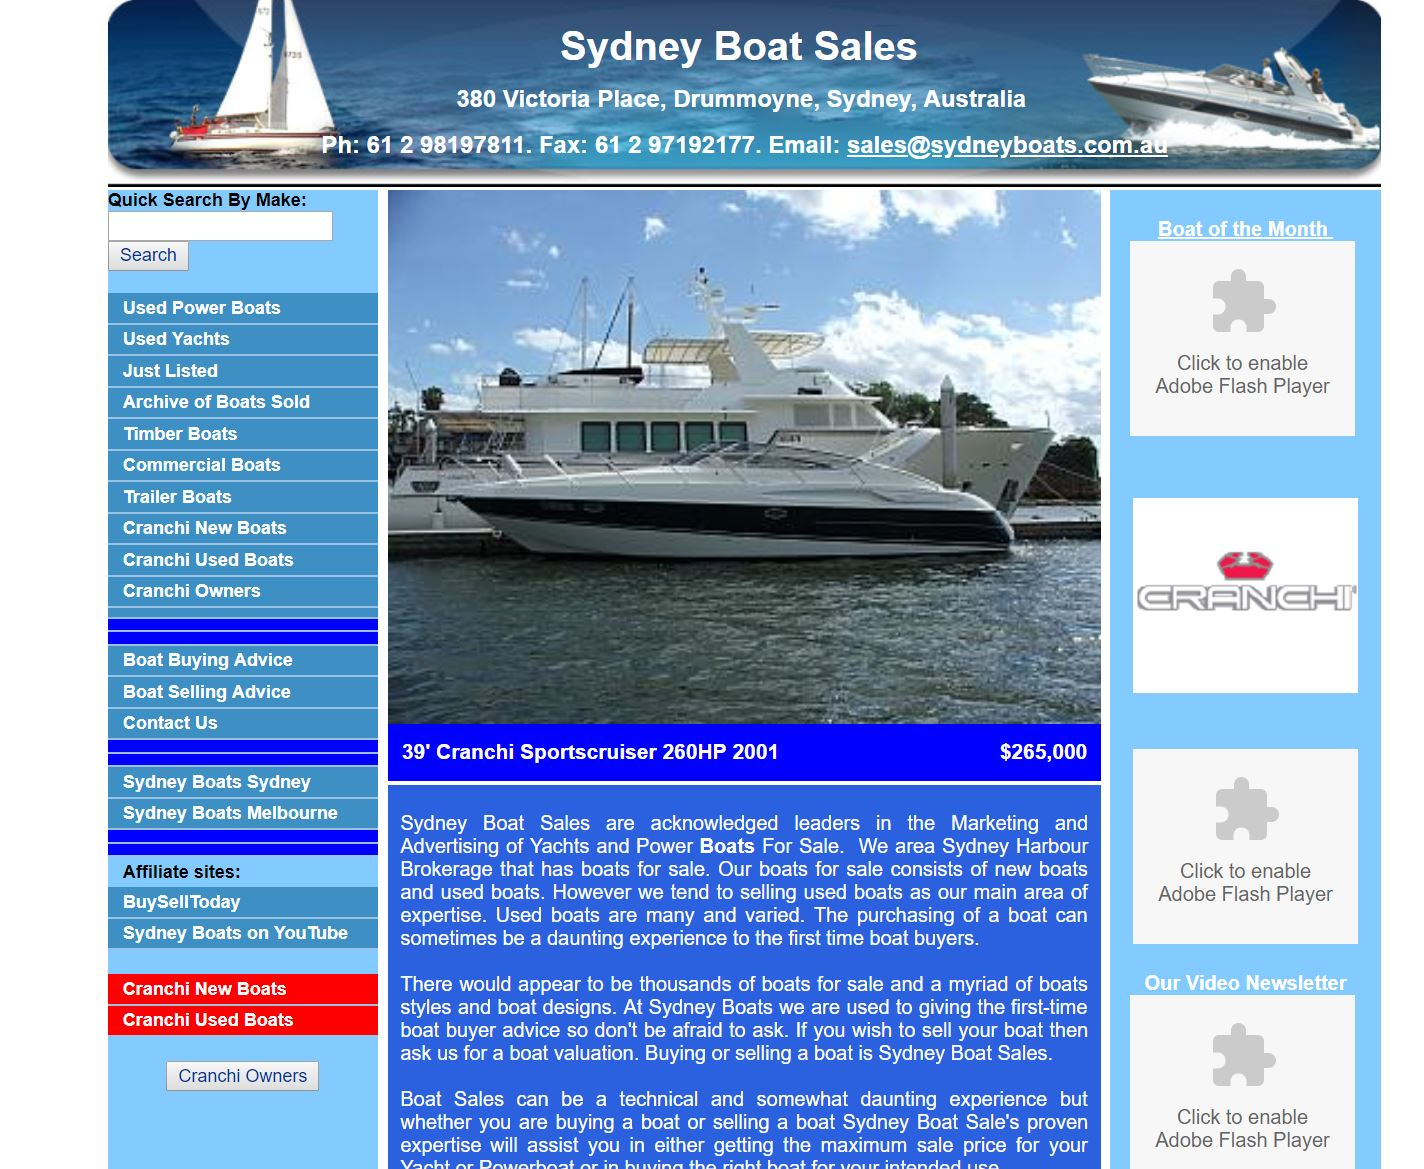 sydneyboats3